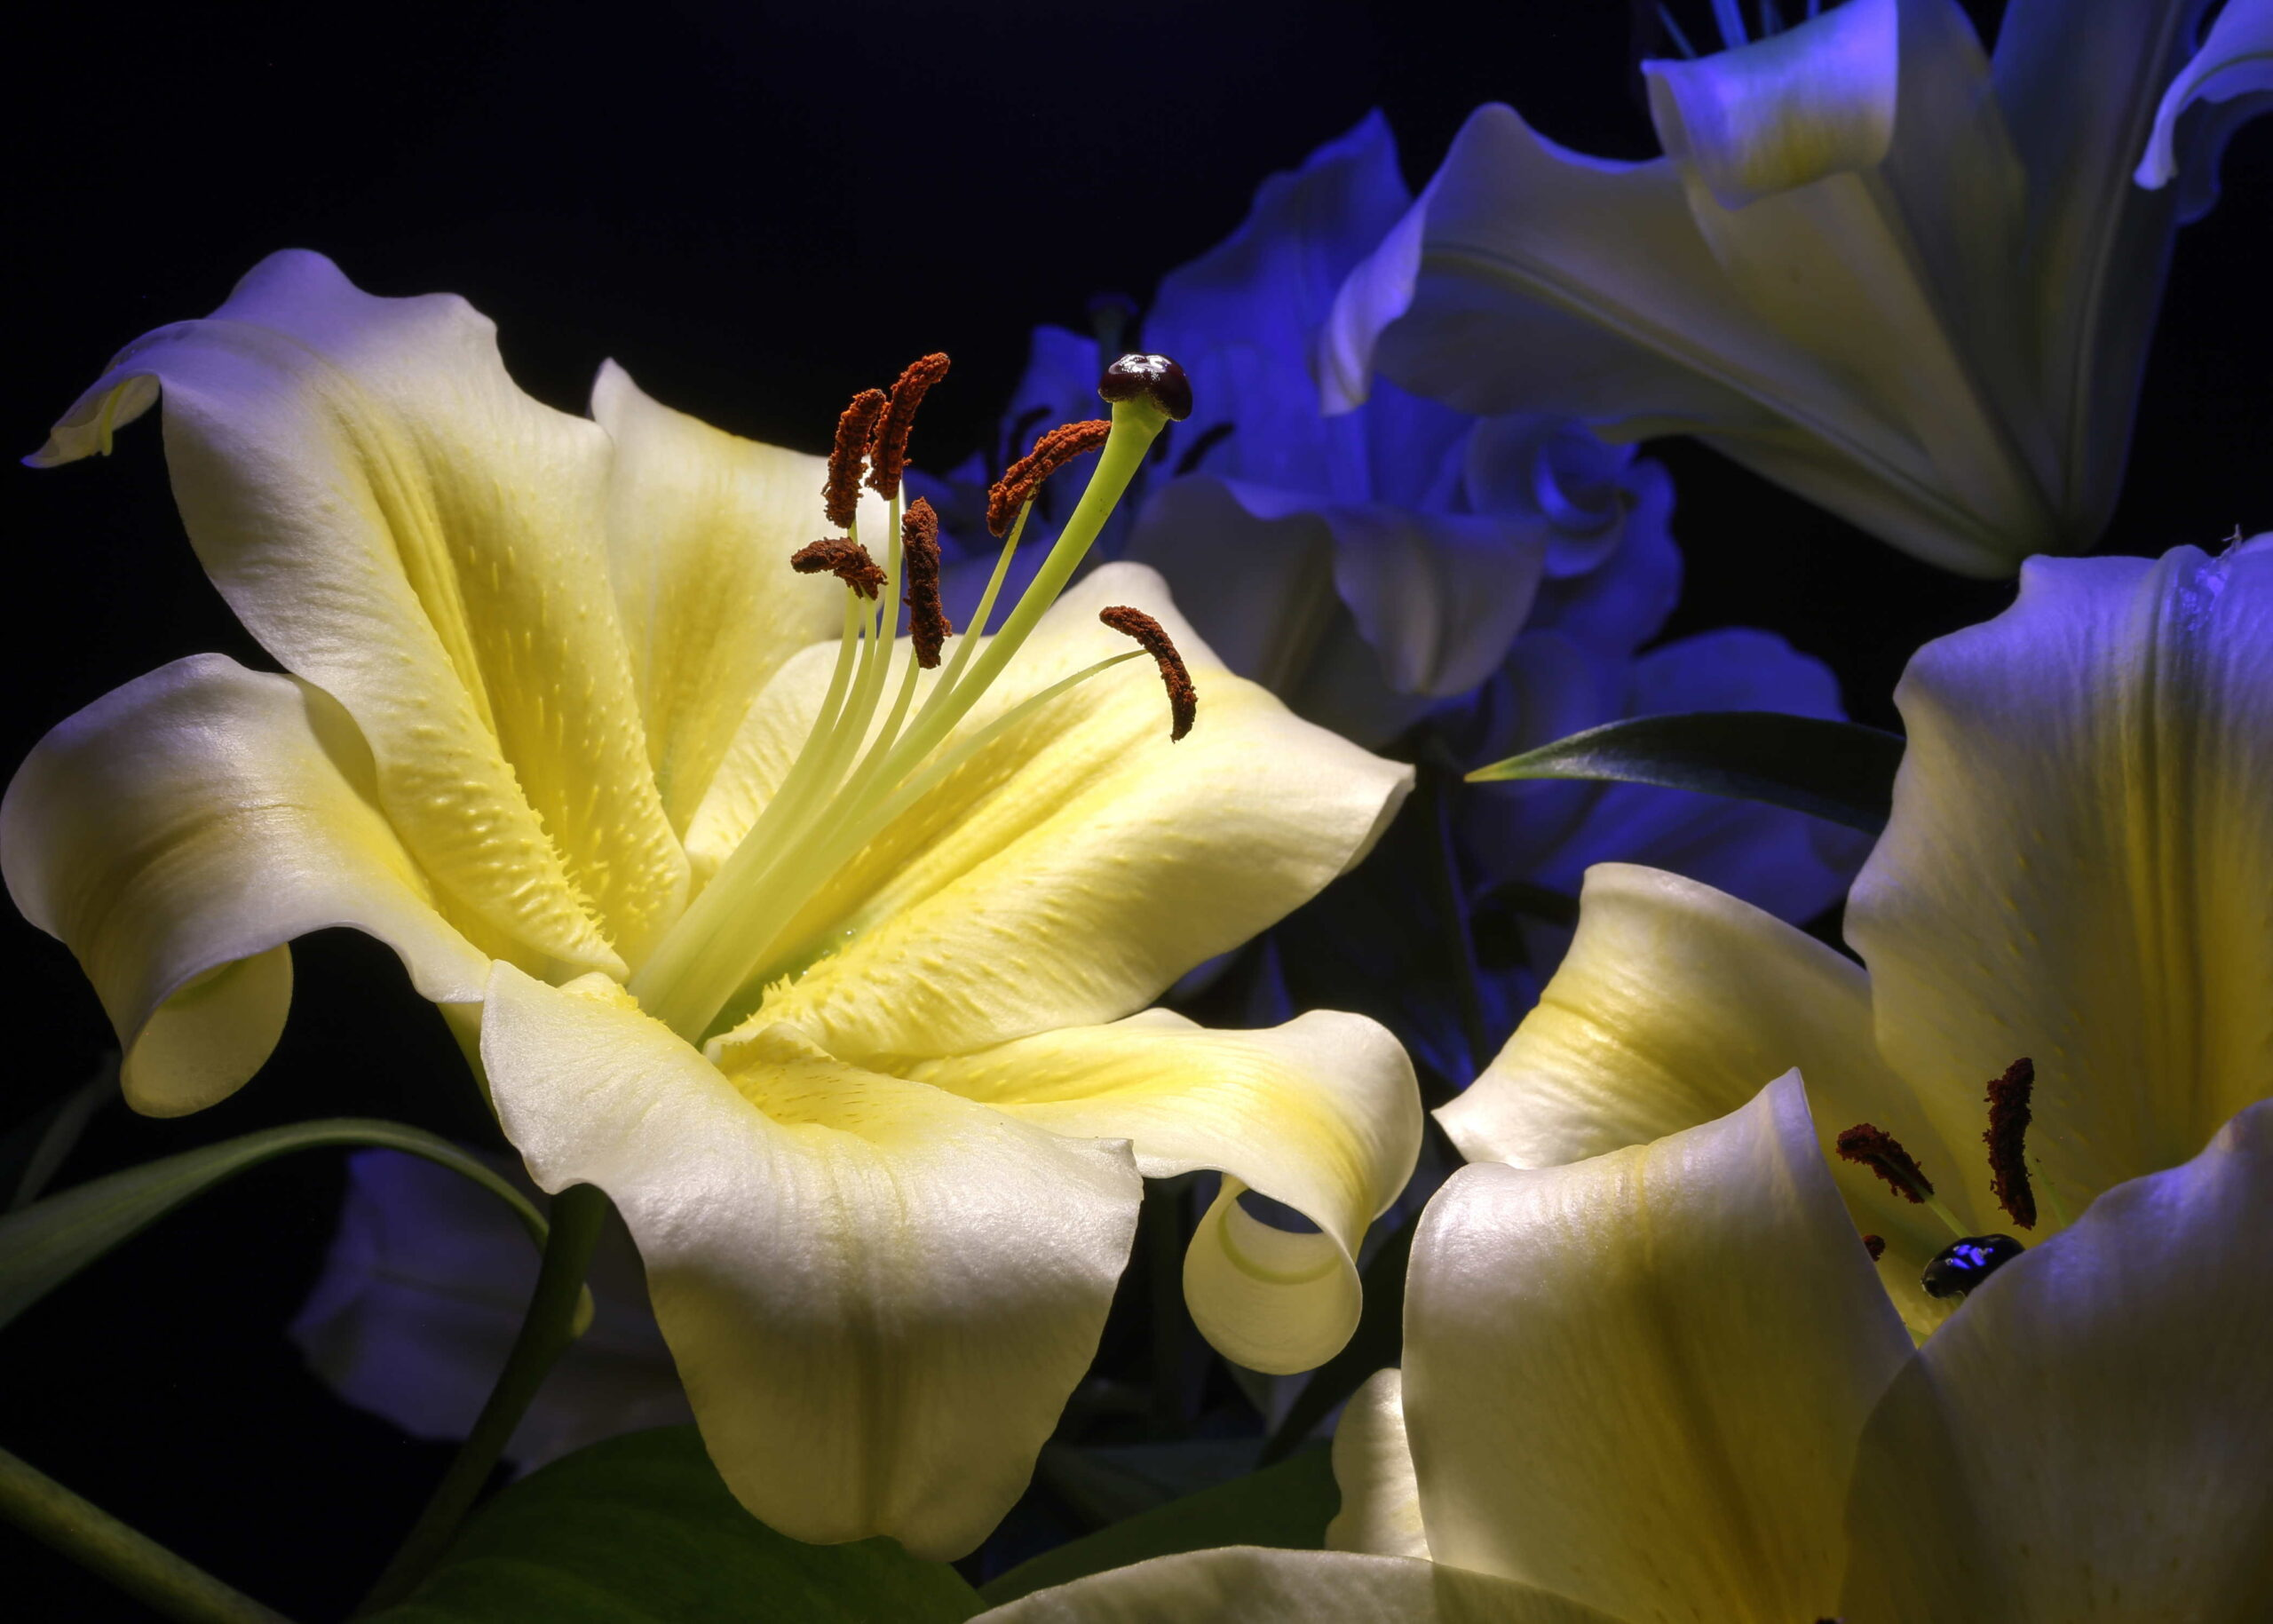 Lillies in Blue and Yellow